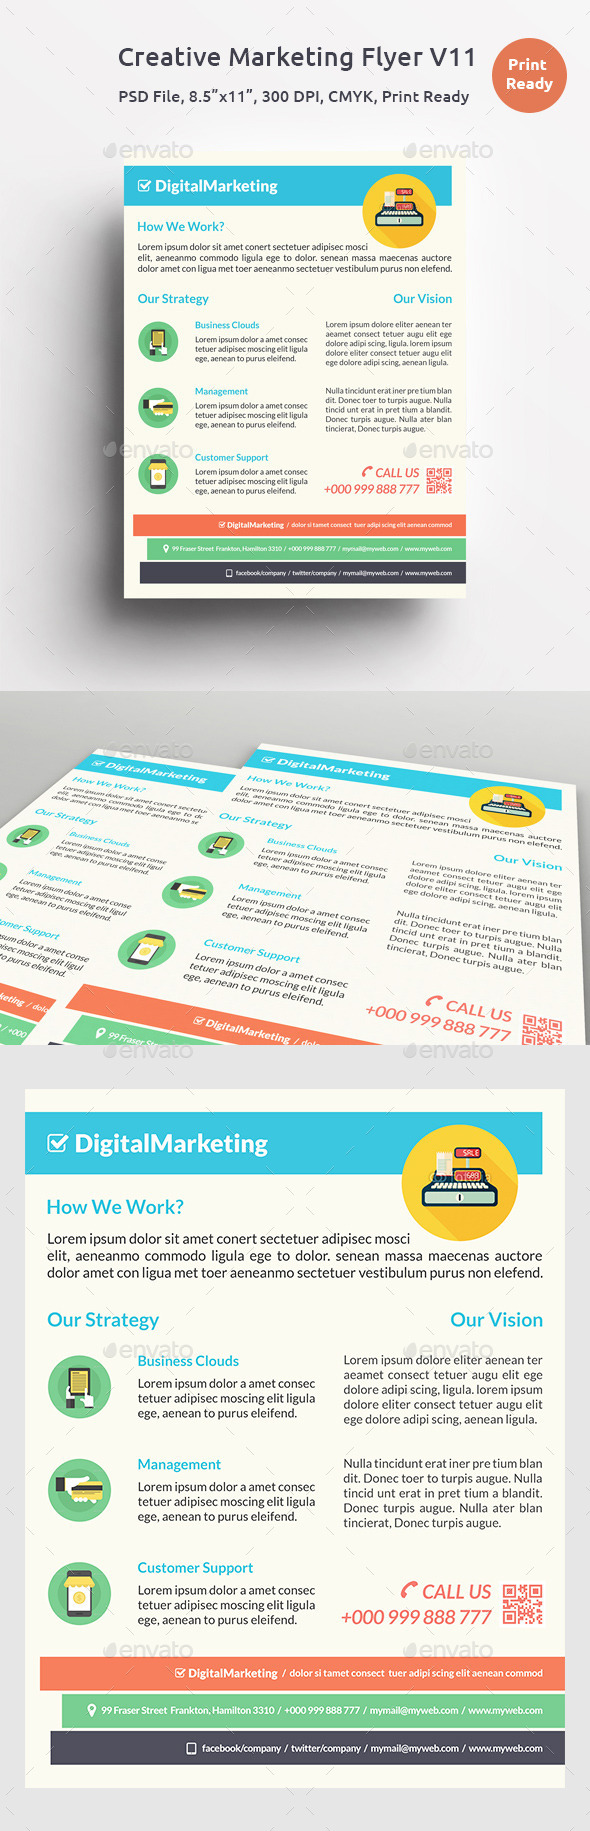 GraphicRiver Creative Marketing Flyer V11 11579467